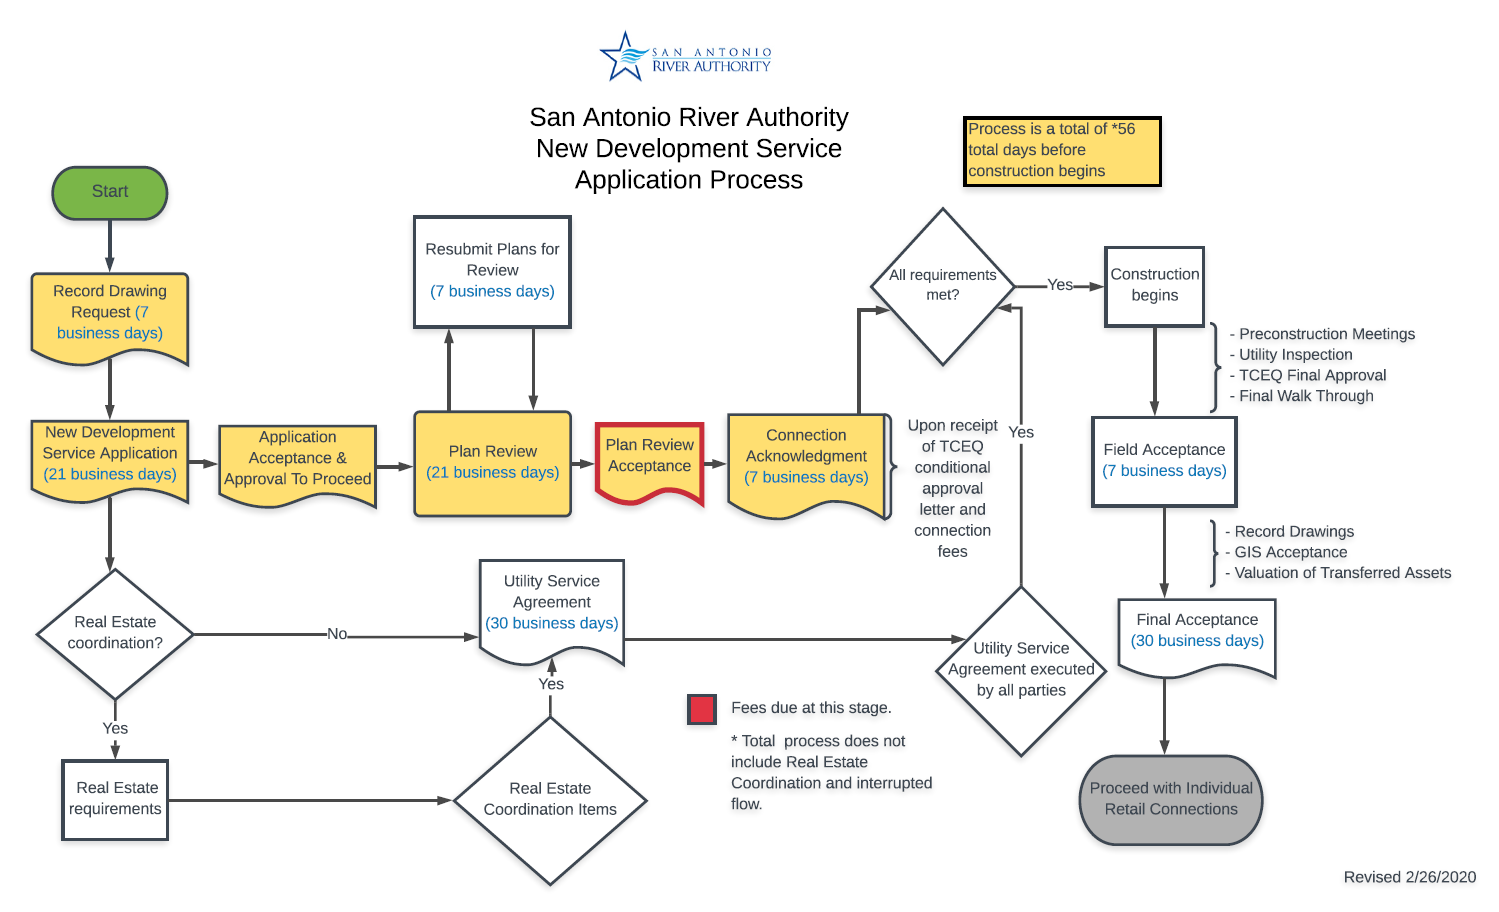 Development Service Application Process Flow Chart